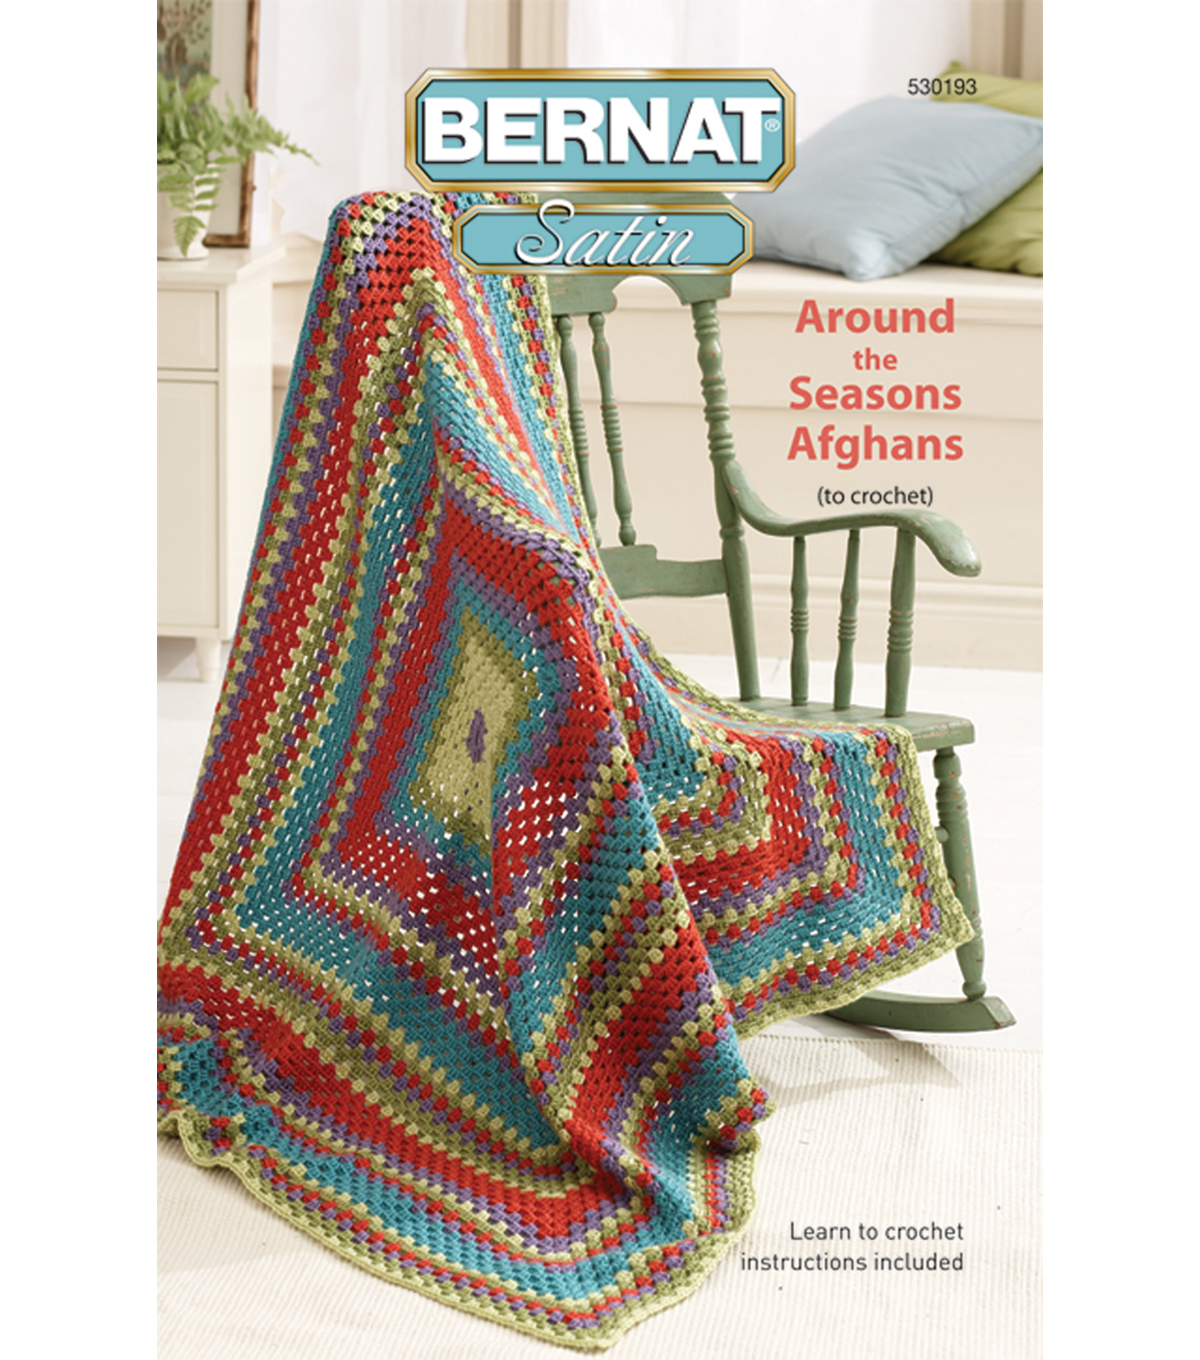 Bernat-Around The Seasons-Satin